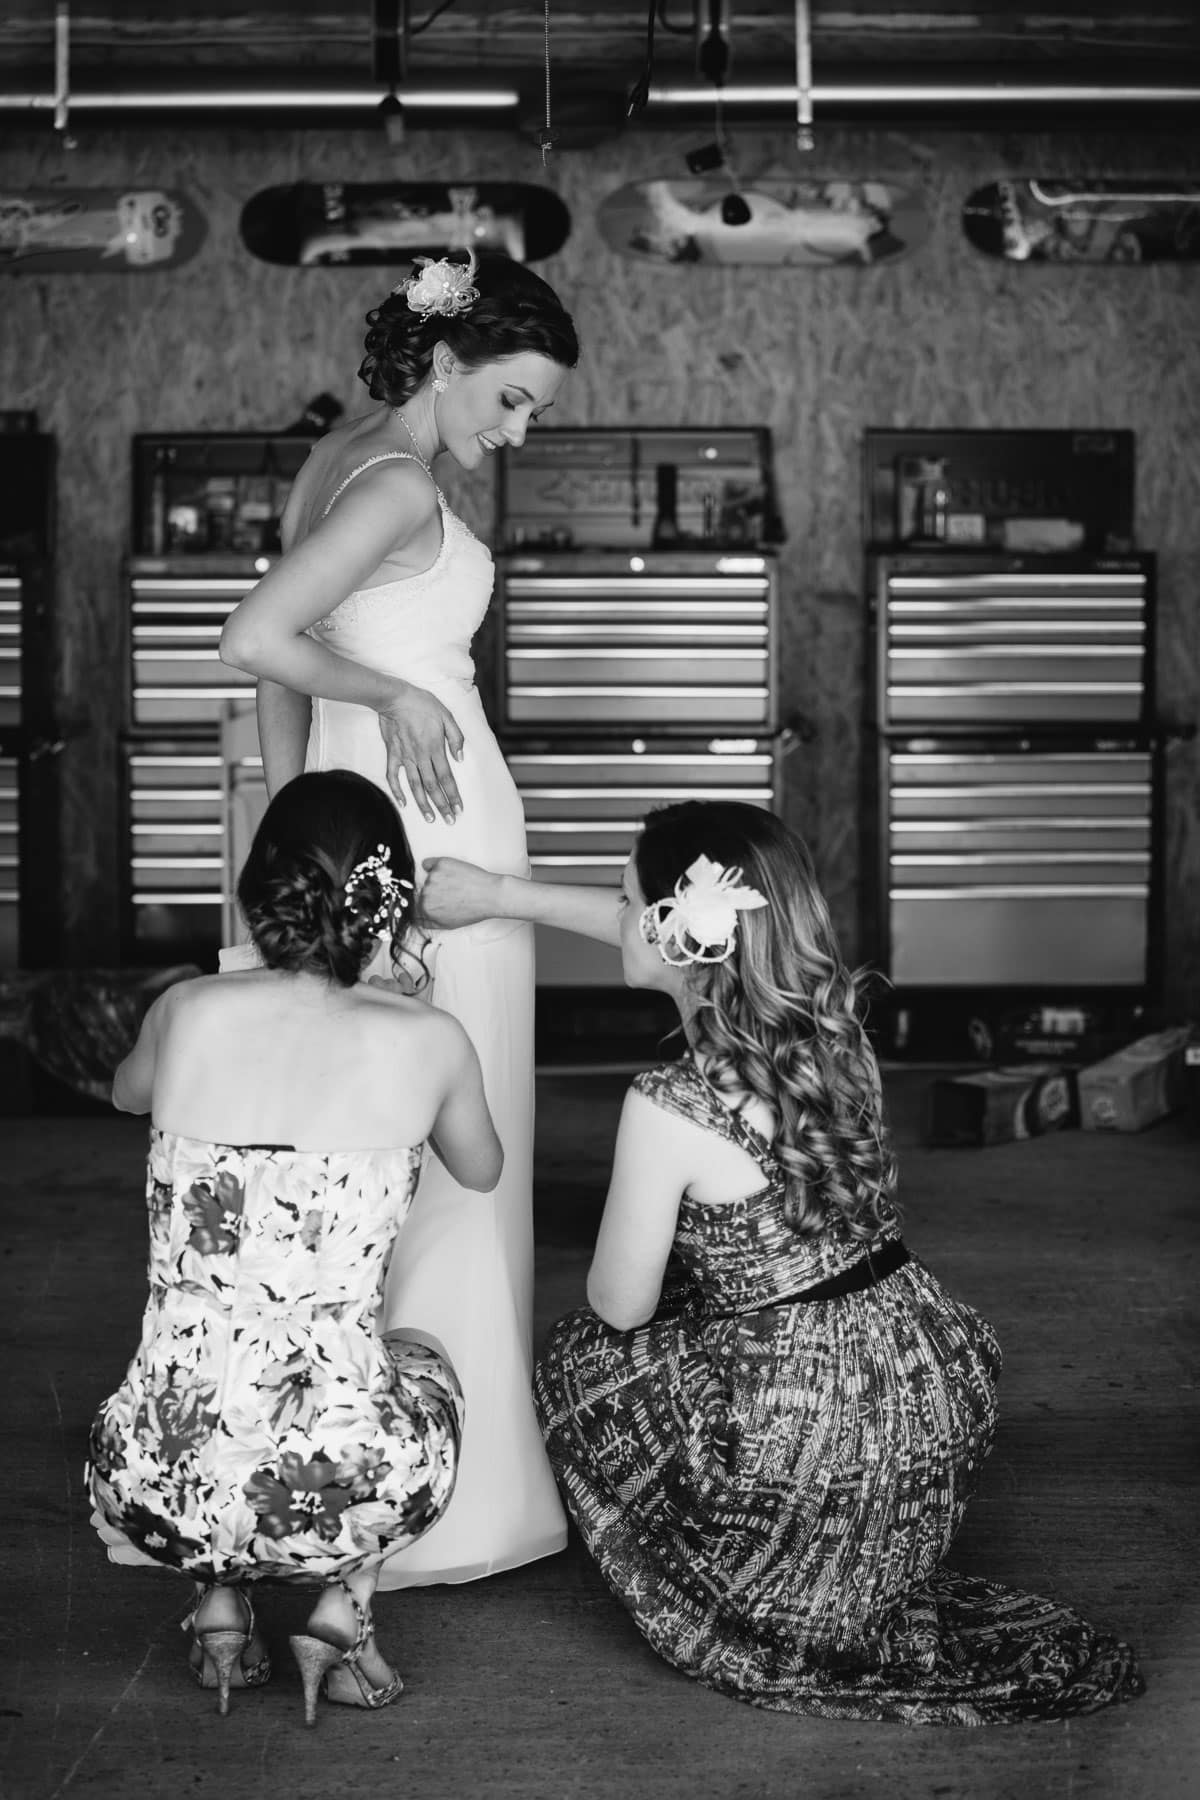 The bride is helped with her dress by two women inside a garage in these backyard wedding photos.